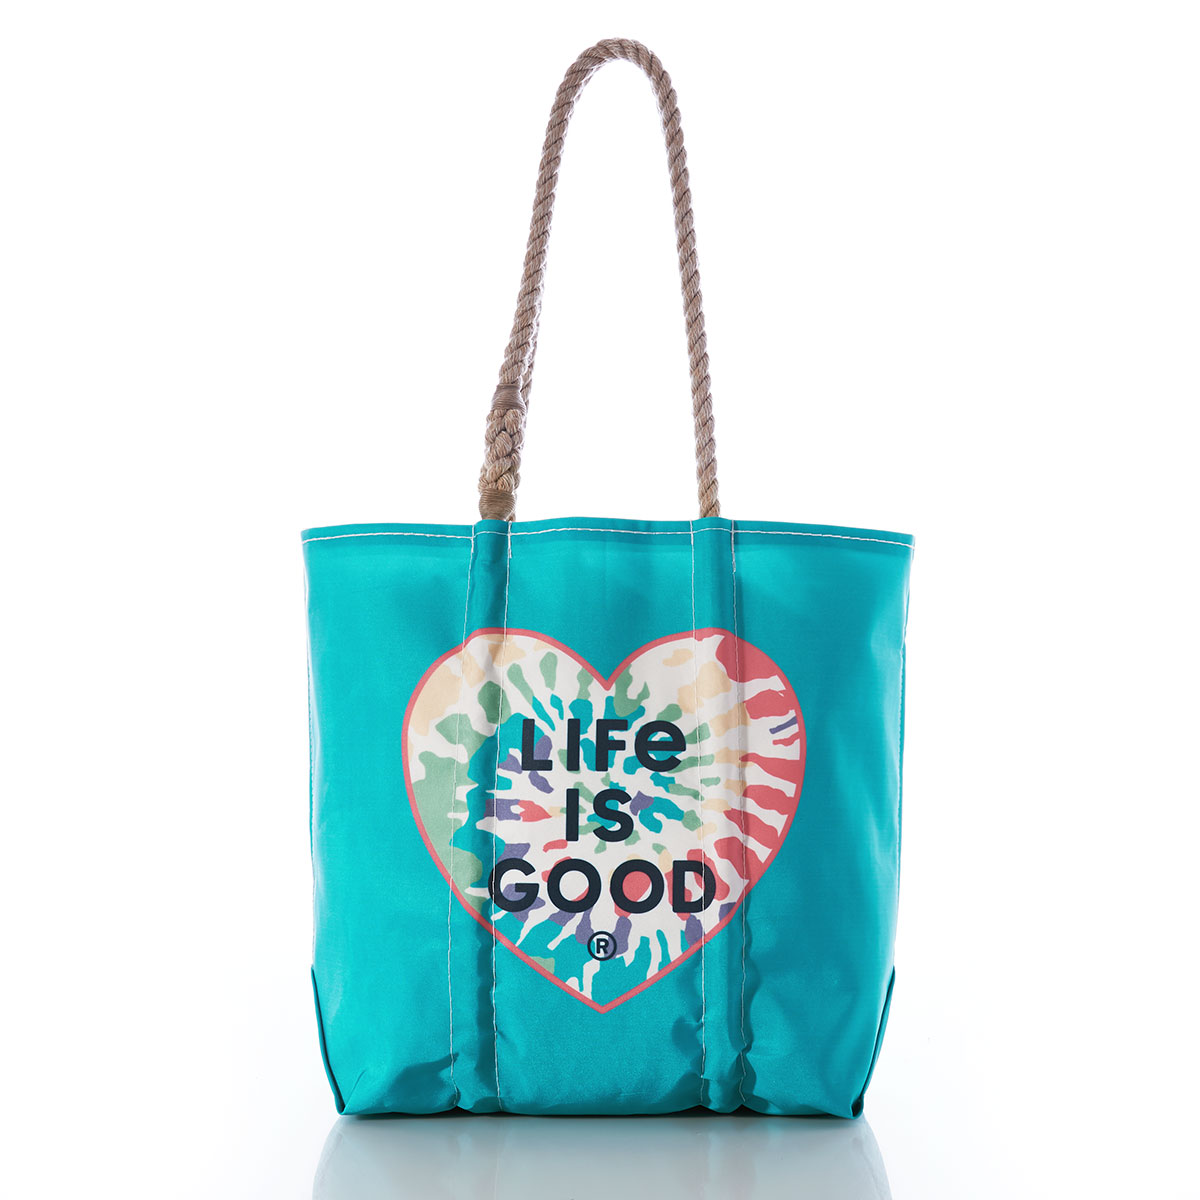 a teal blue recycled sail cloth tote with hemp rope handles is printed with a tie dye heart shape with the life is good brand name inside